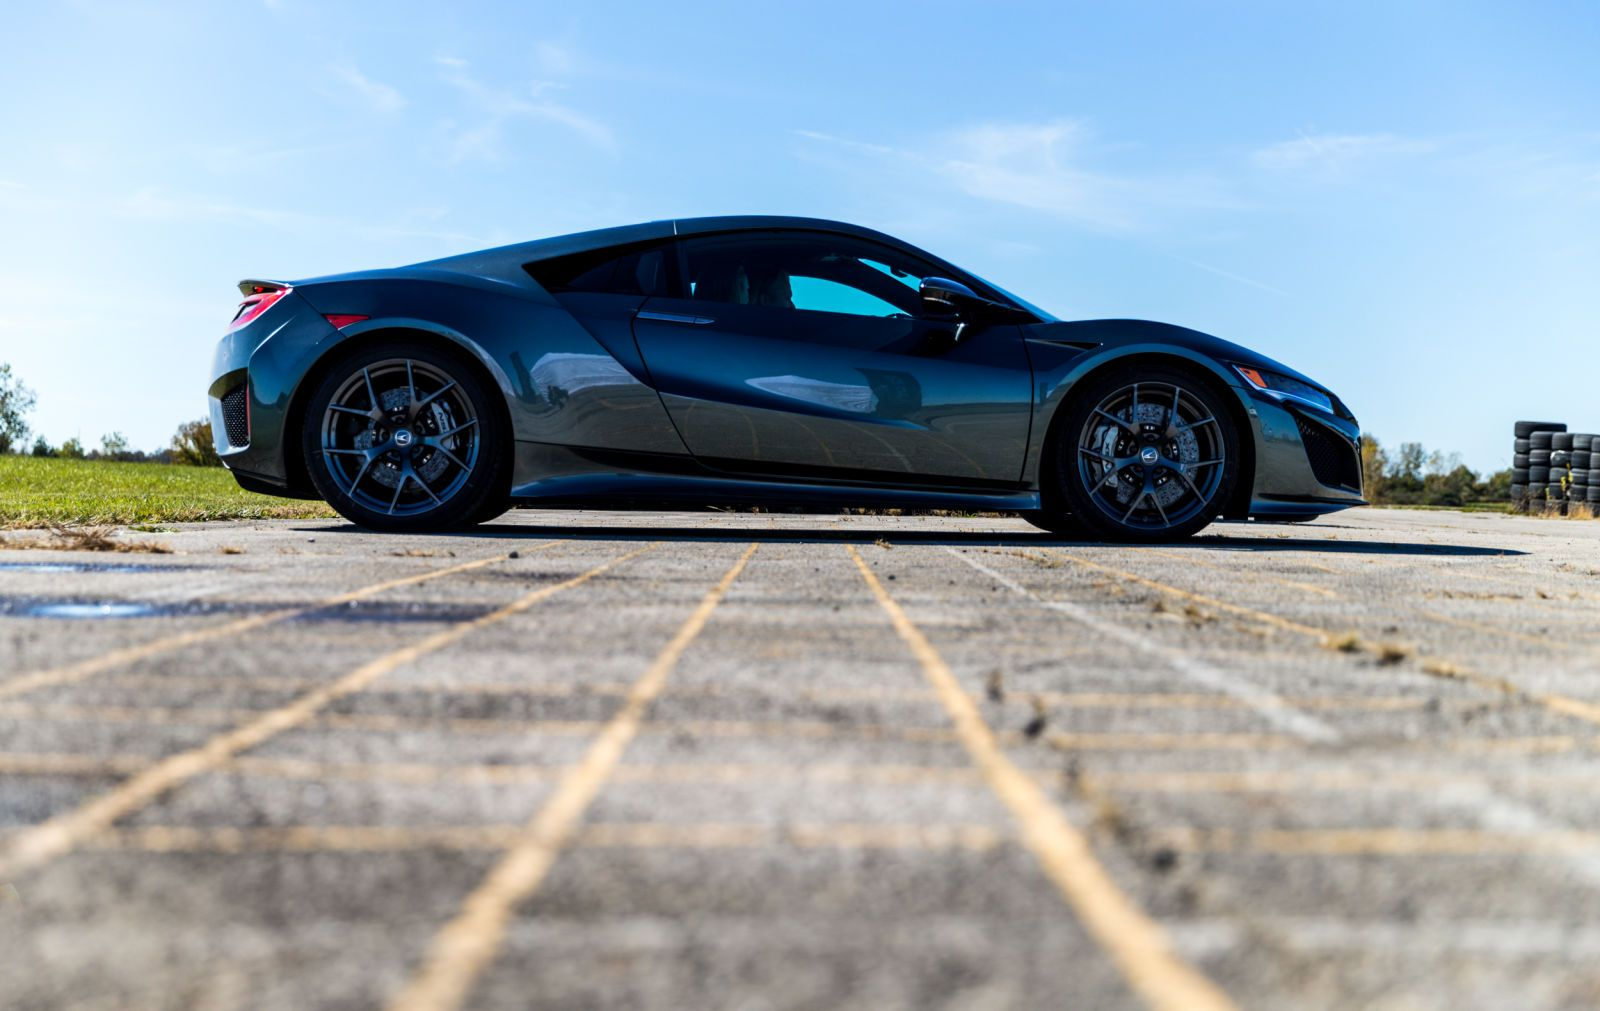 2019 Acura Nsx Here S How Much Better It Is Wheels Acura Nsx